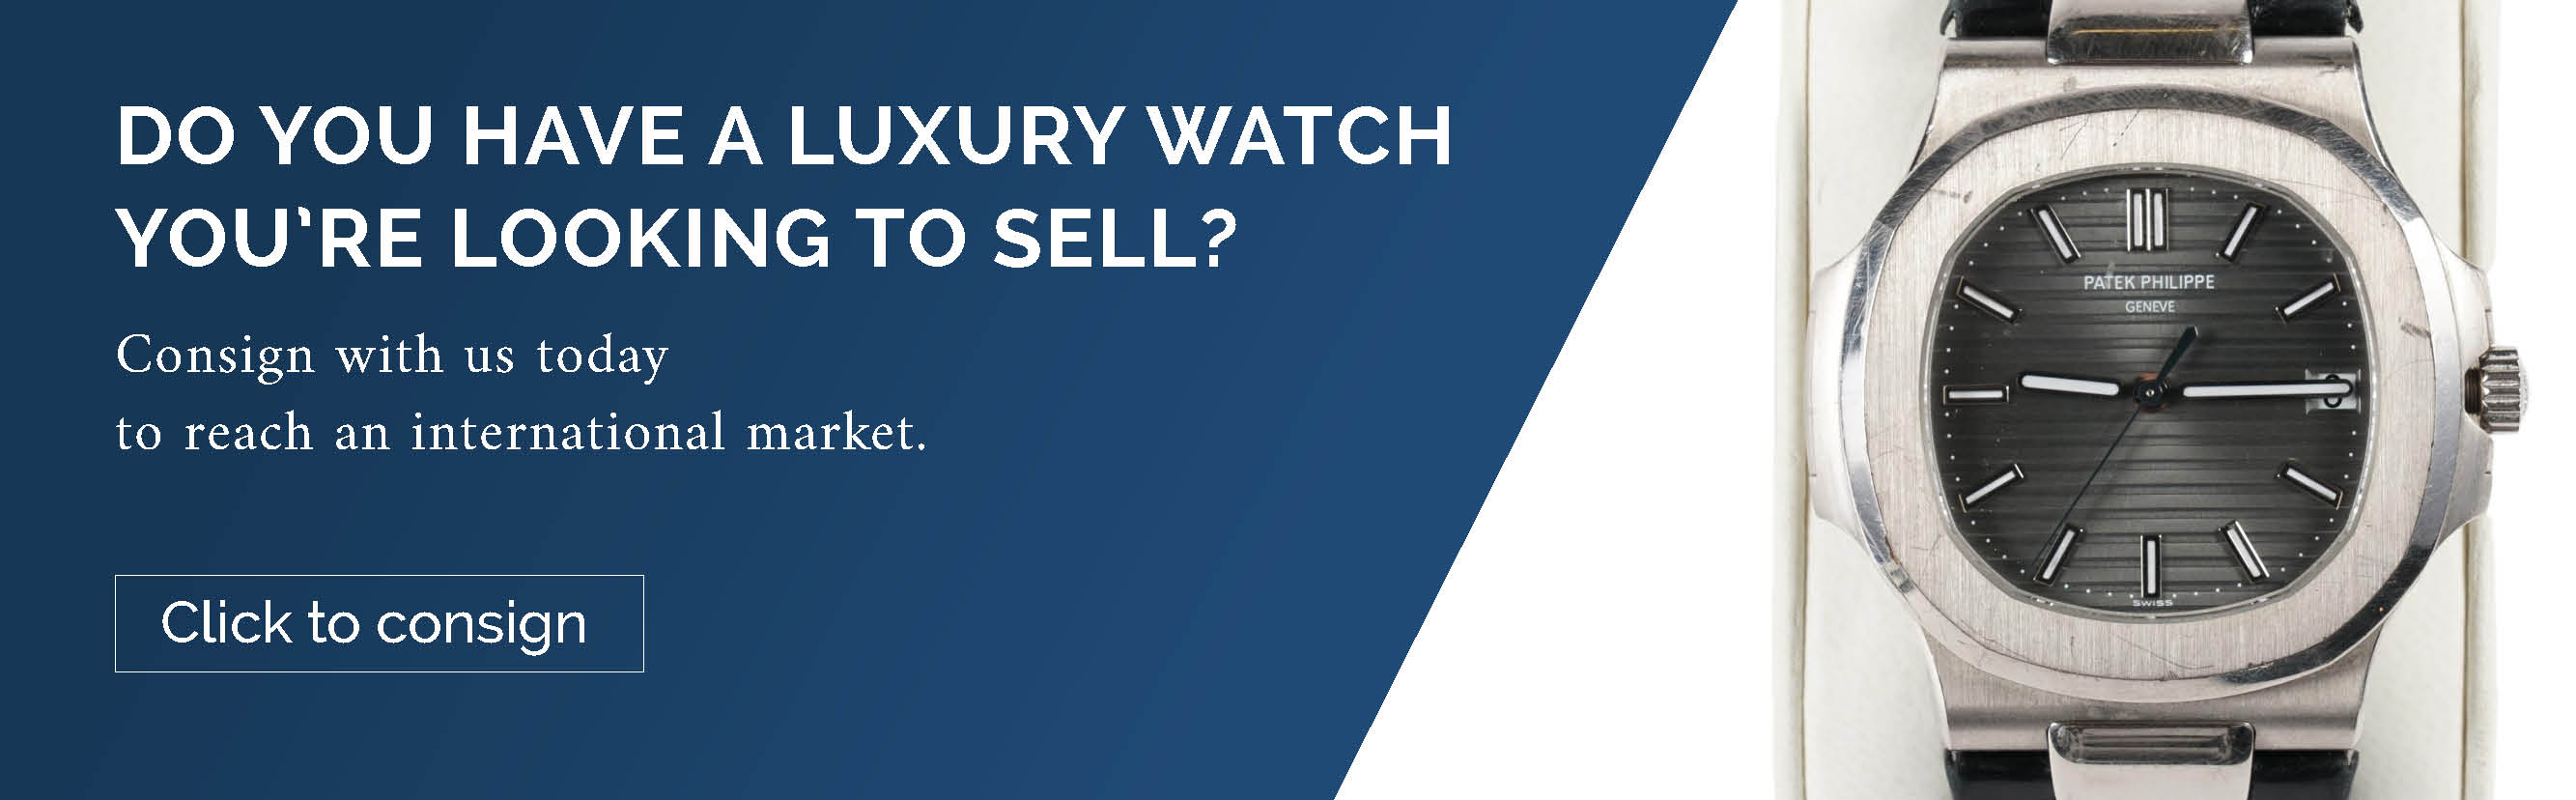 Advertisement for consigning luxury watches